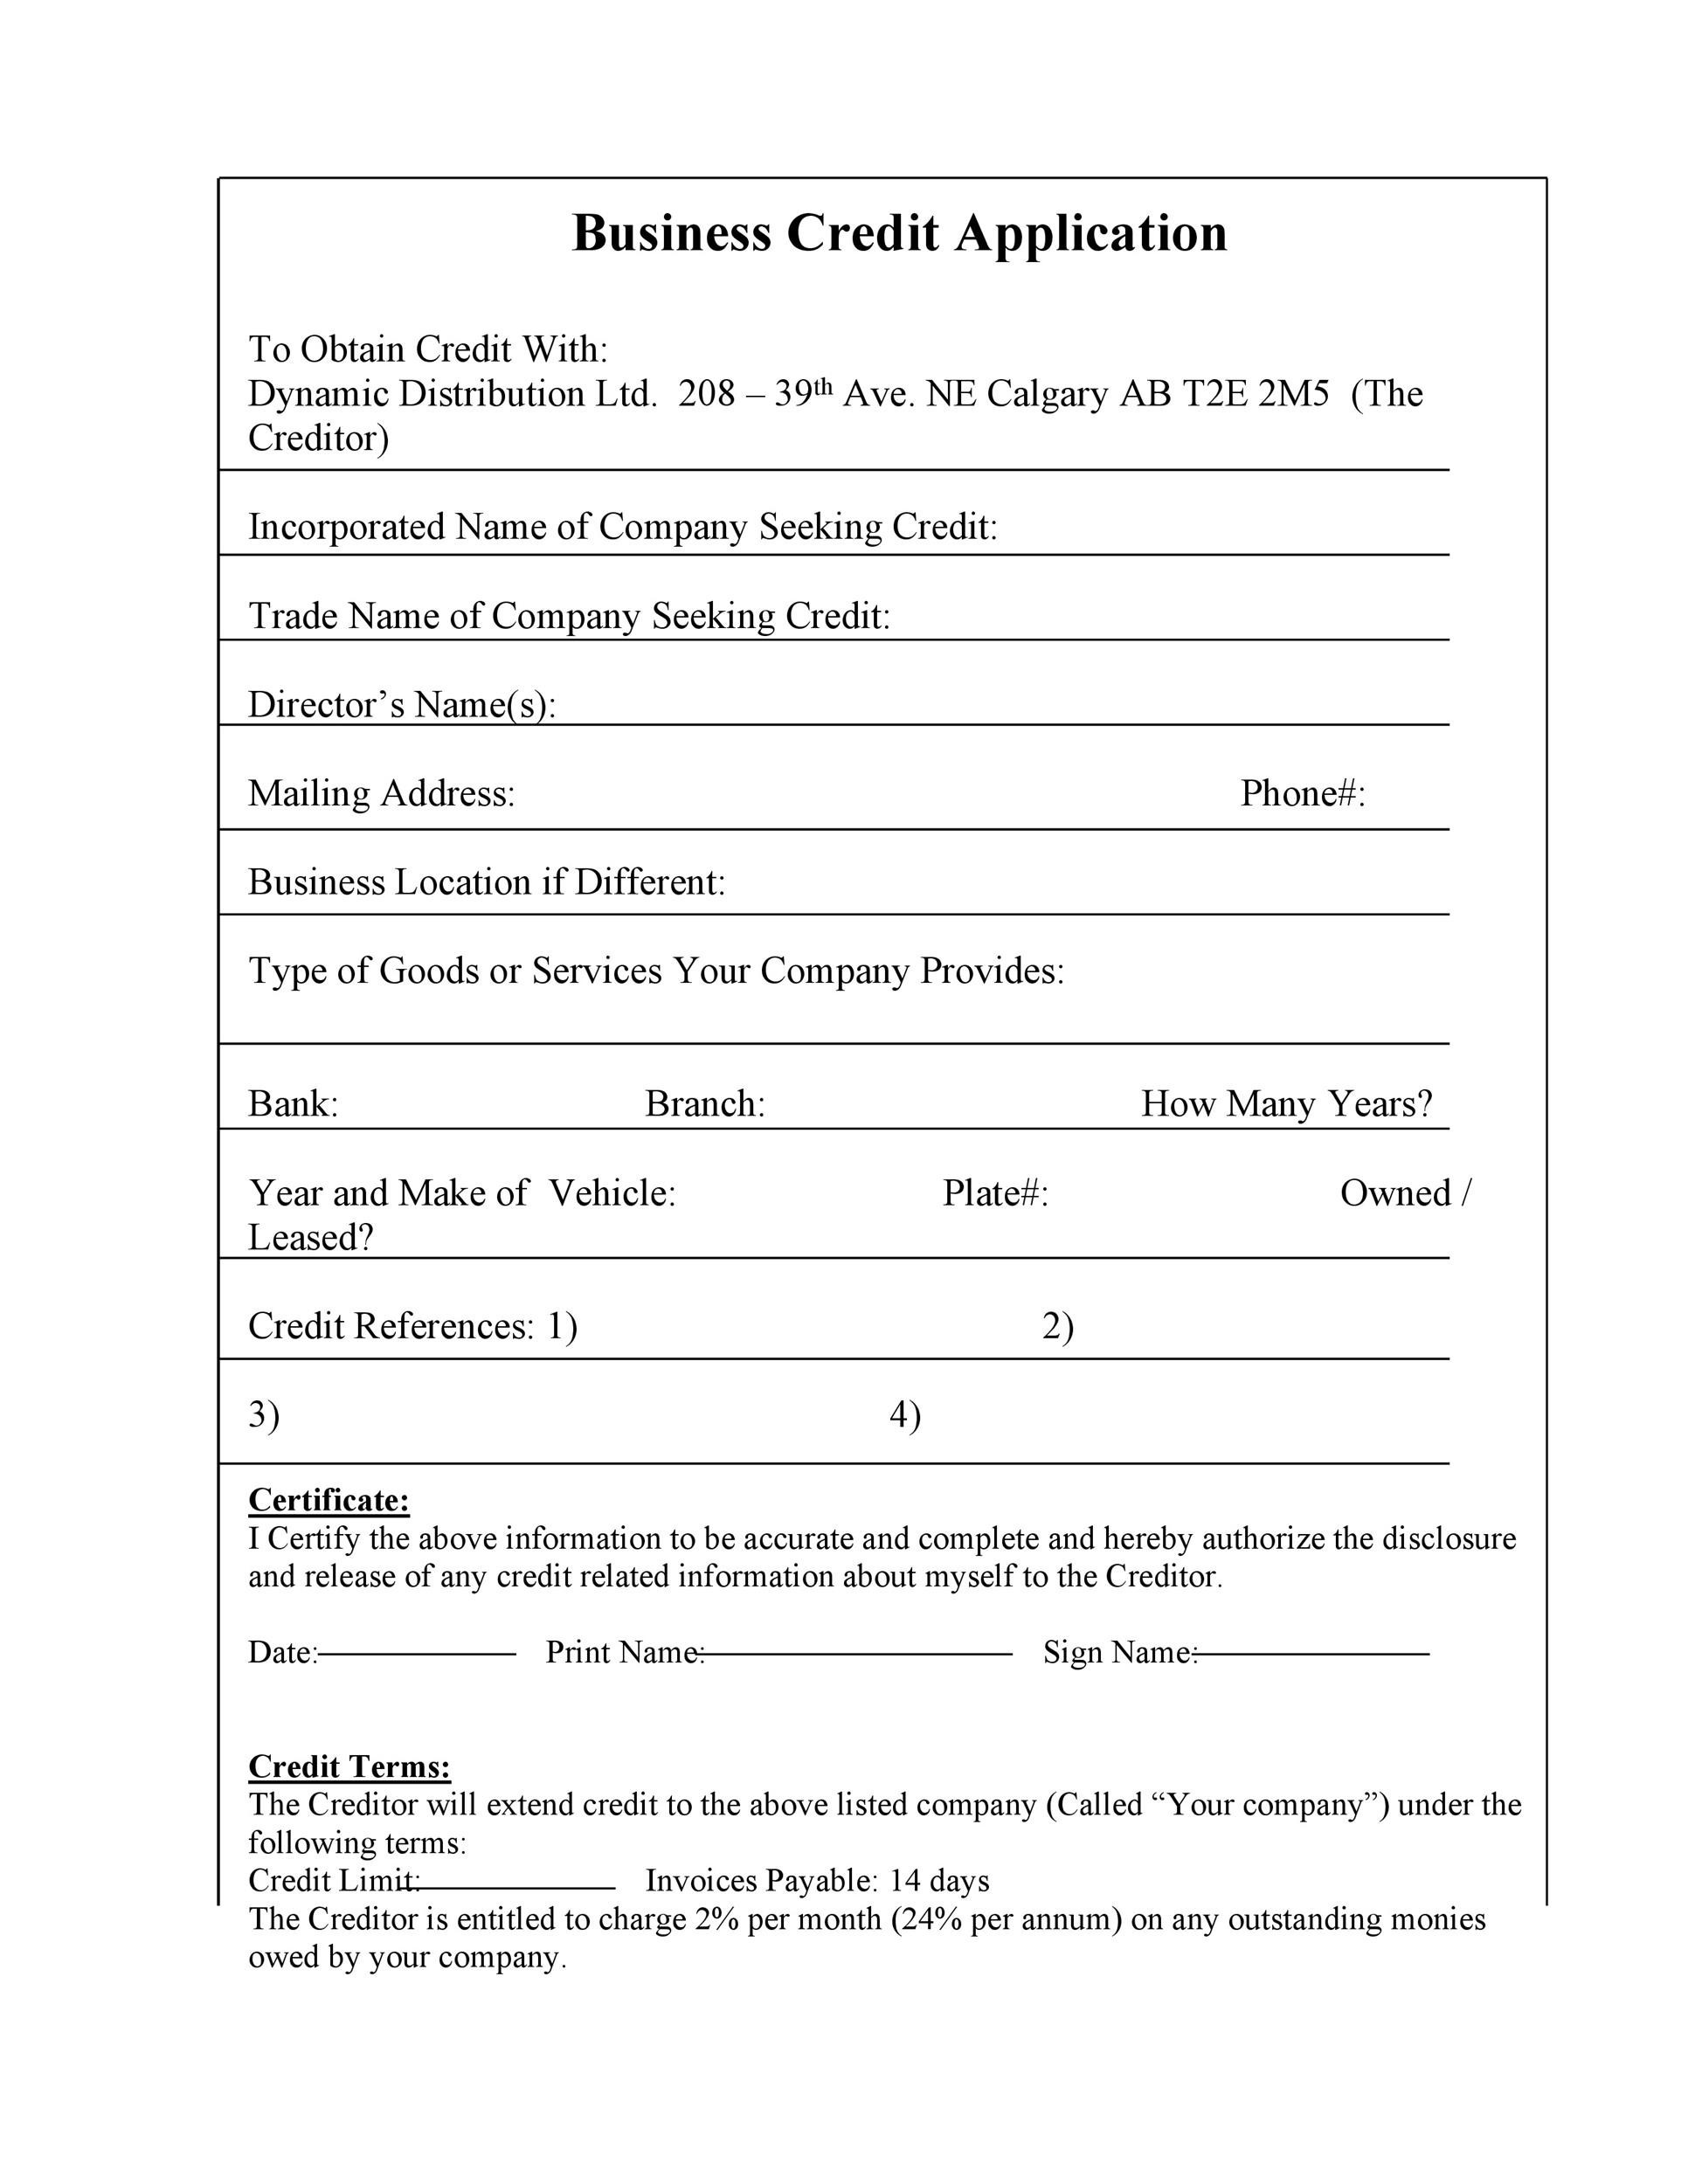 40 Free Credit Application Form Templates  Samples - credit application form